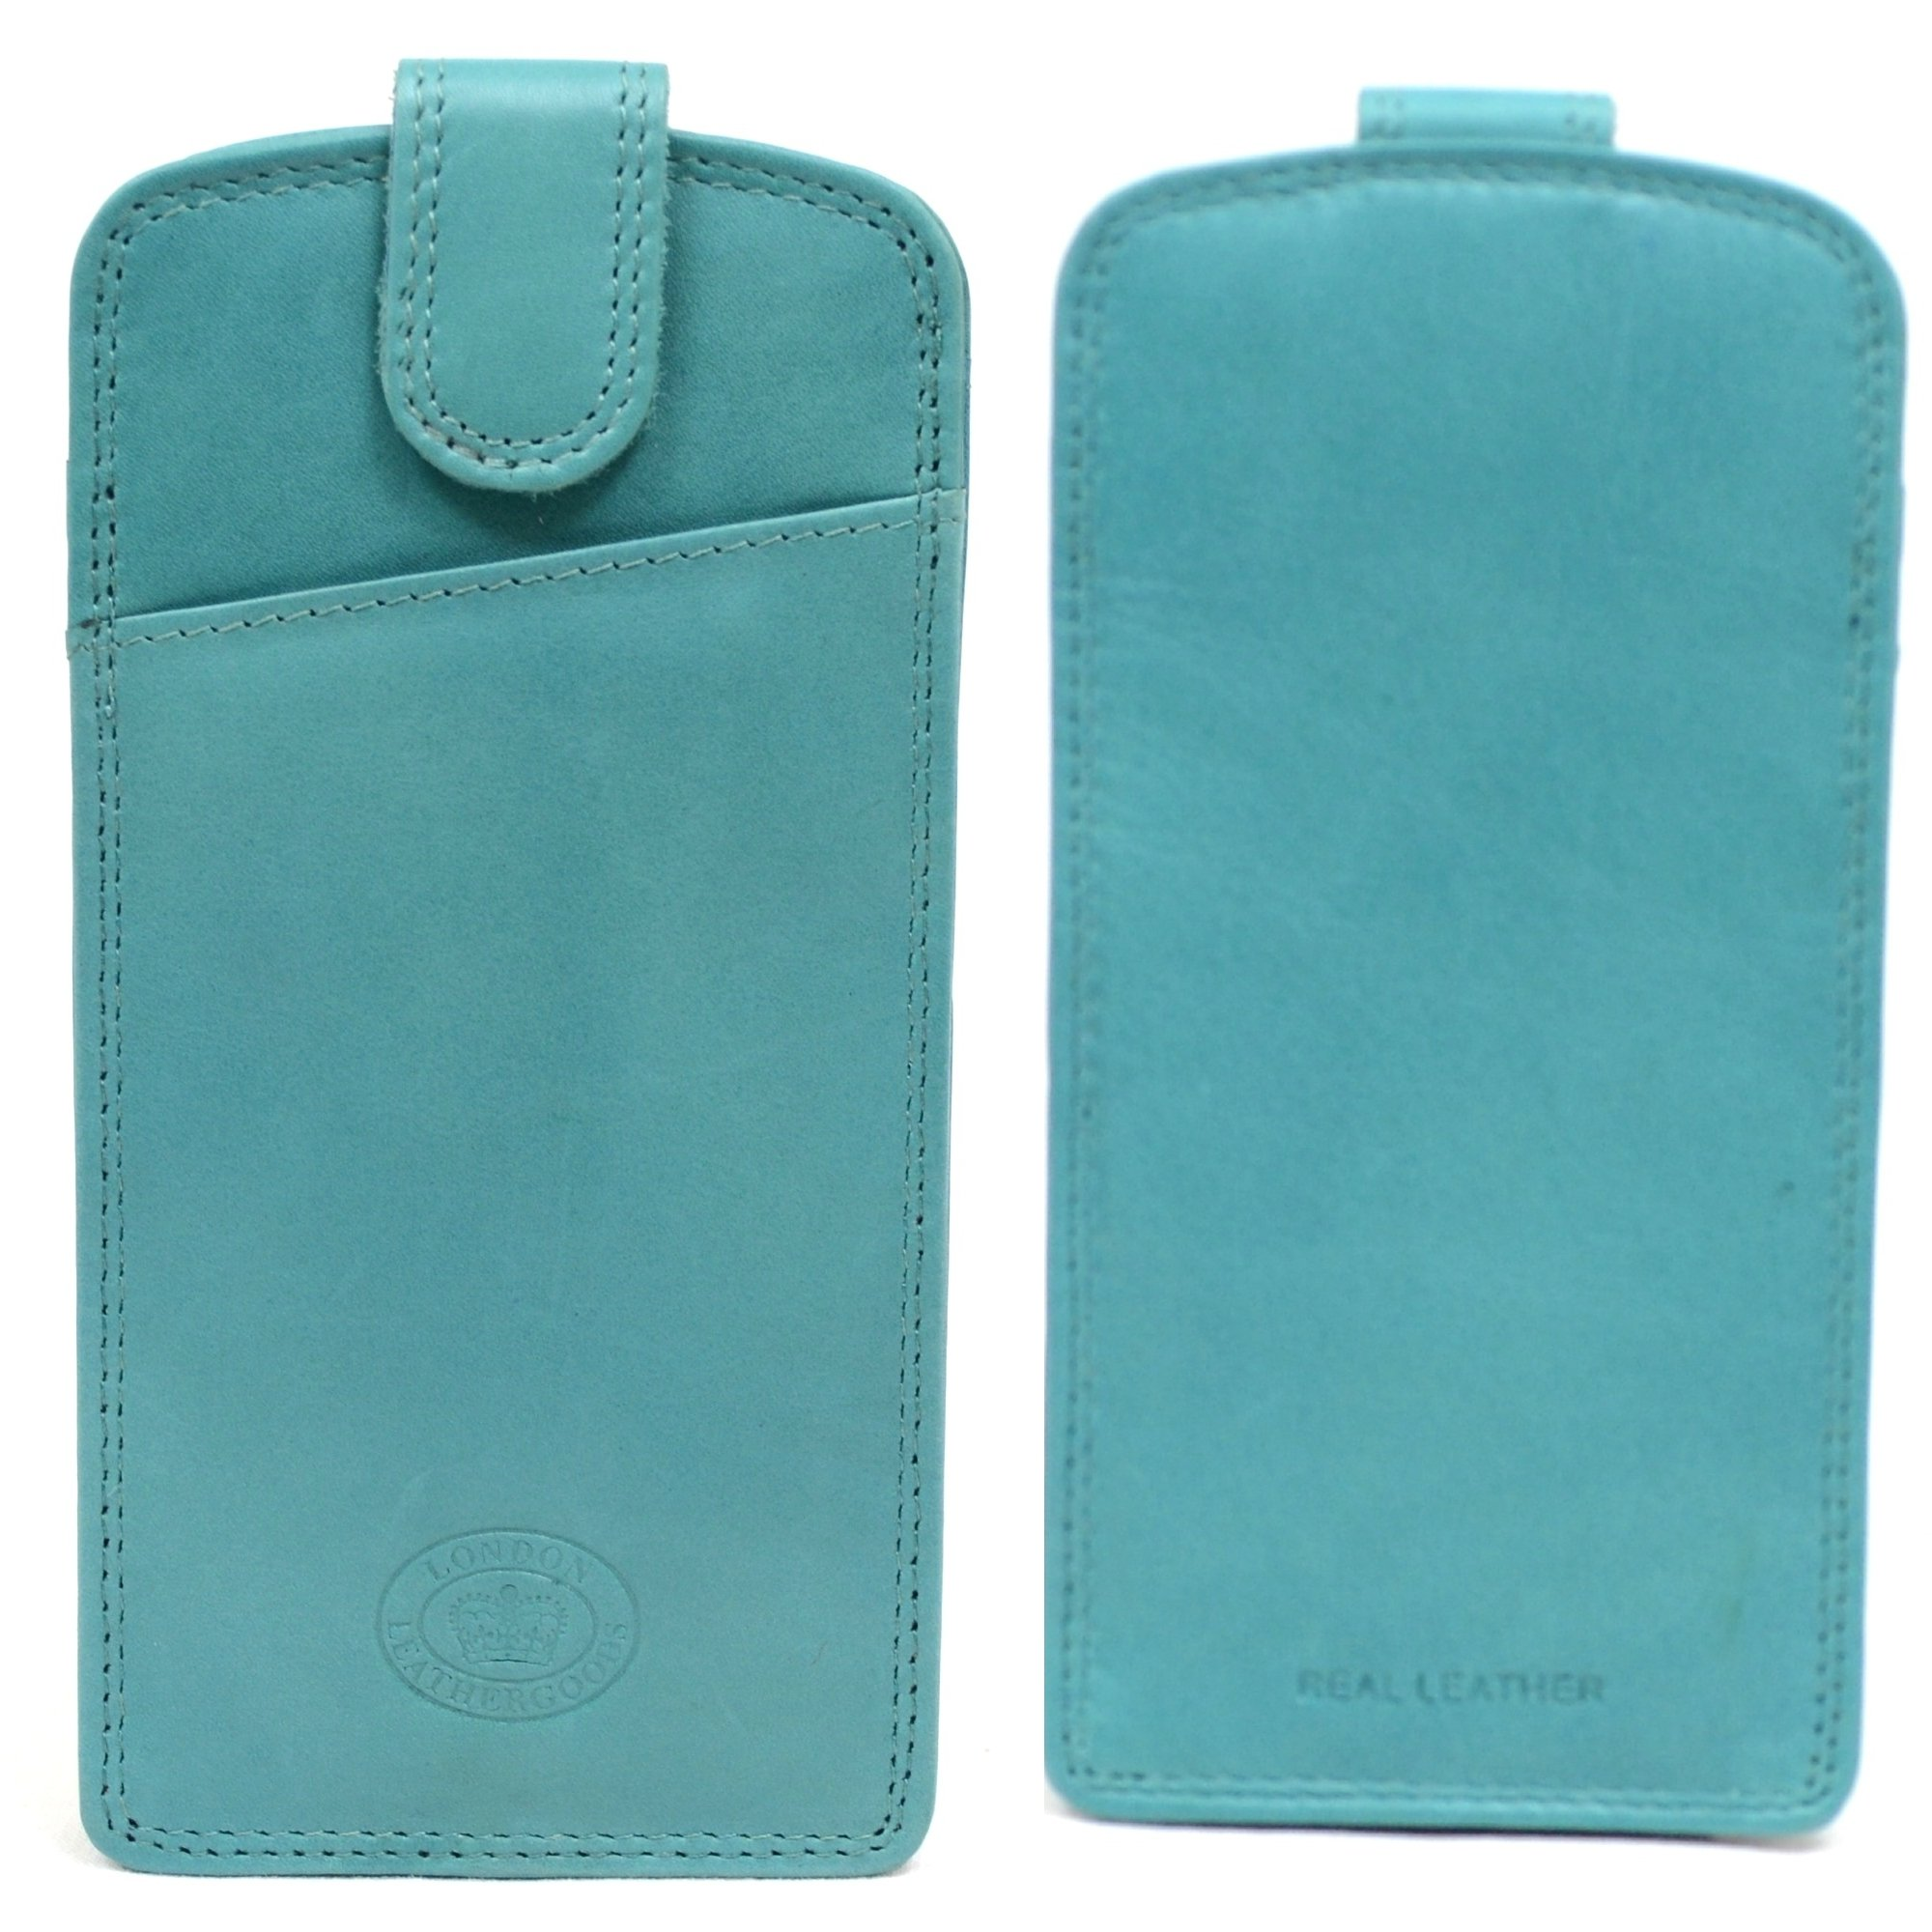 Mens / Ladies / Womens Soft Leather Slim Glasses Case / Pouch - Turquoise